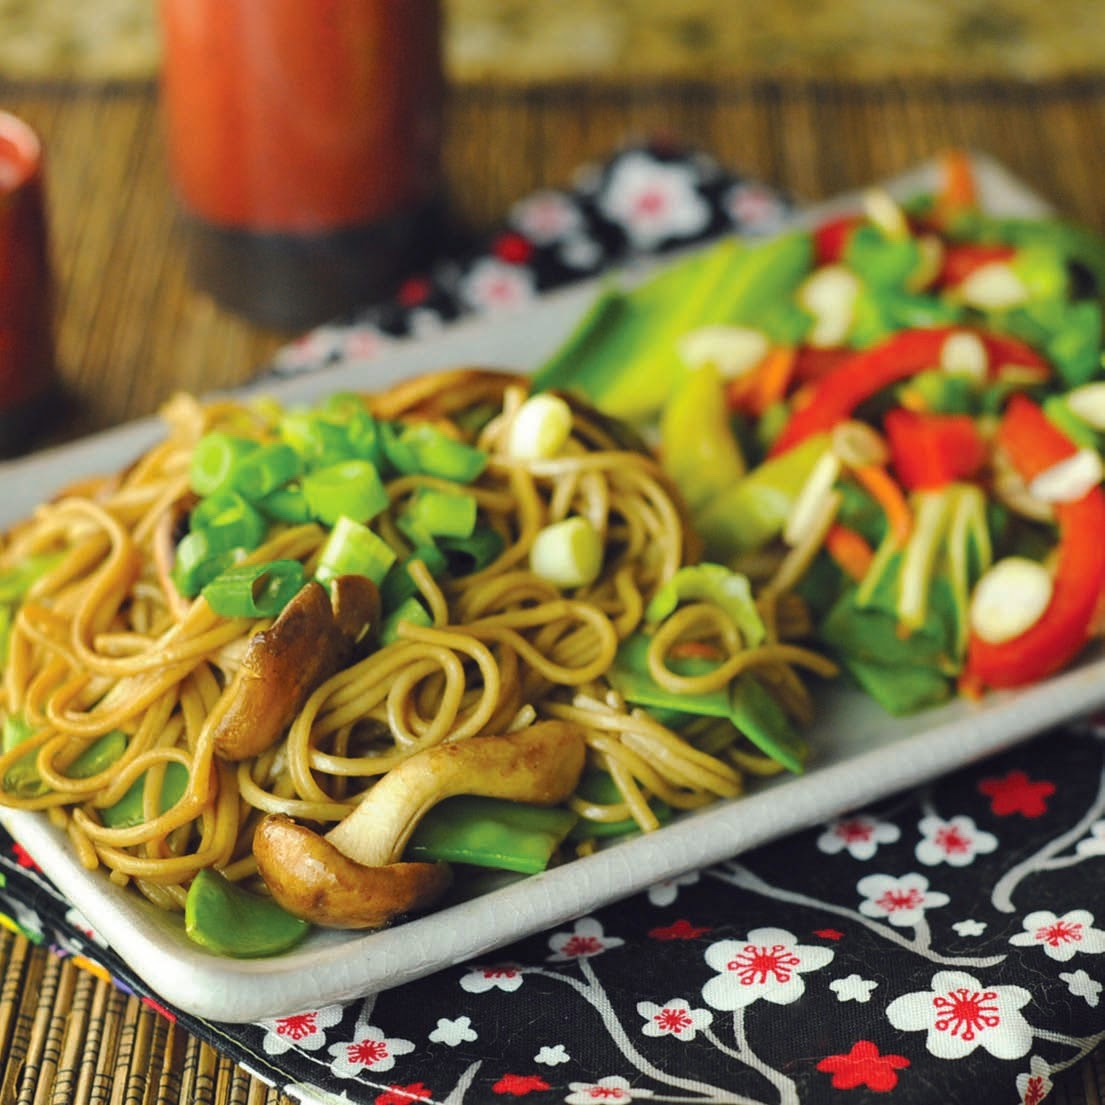 Soba noodles or whole wheat linguine can be used in this chicken dish.